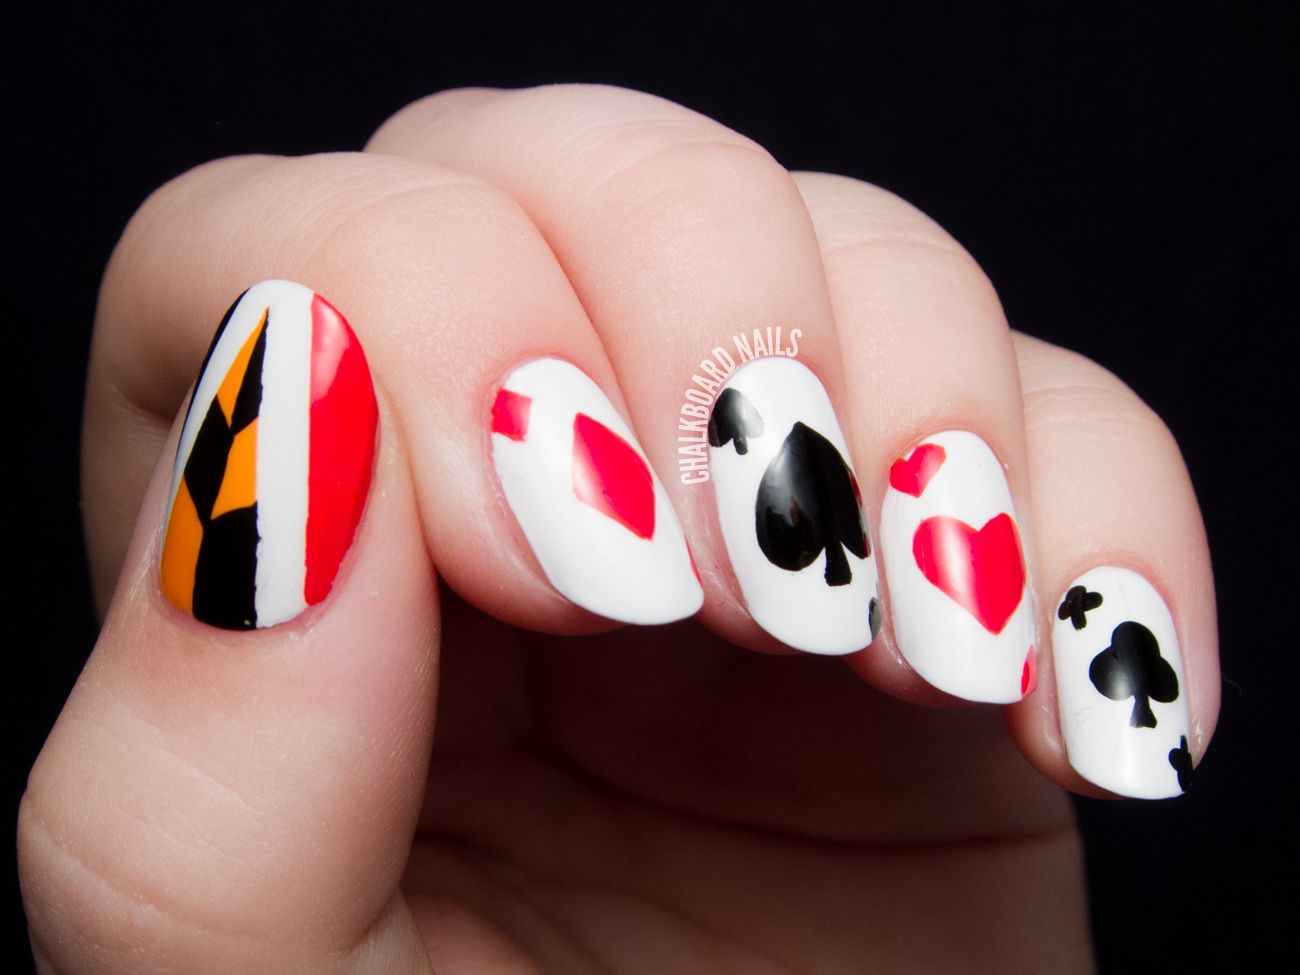 Off With Their Heads! Queen of Hearts Nail Art